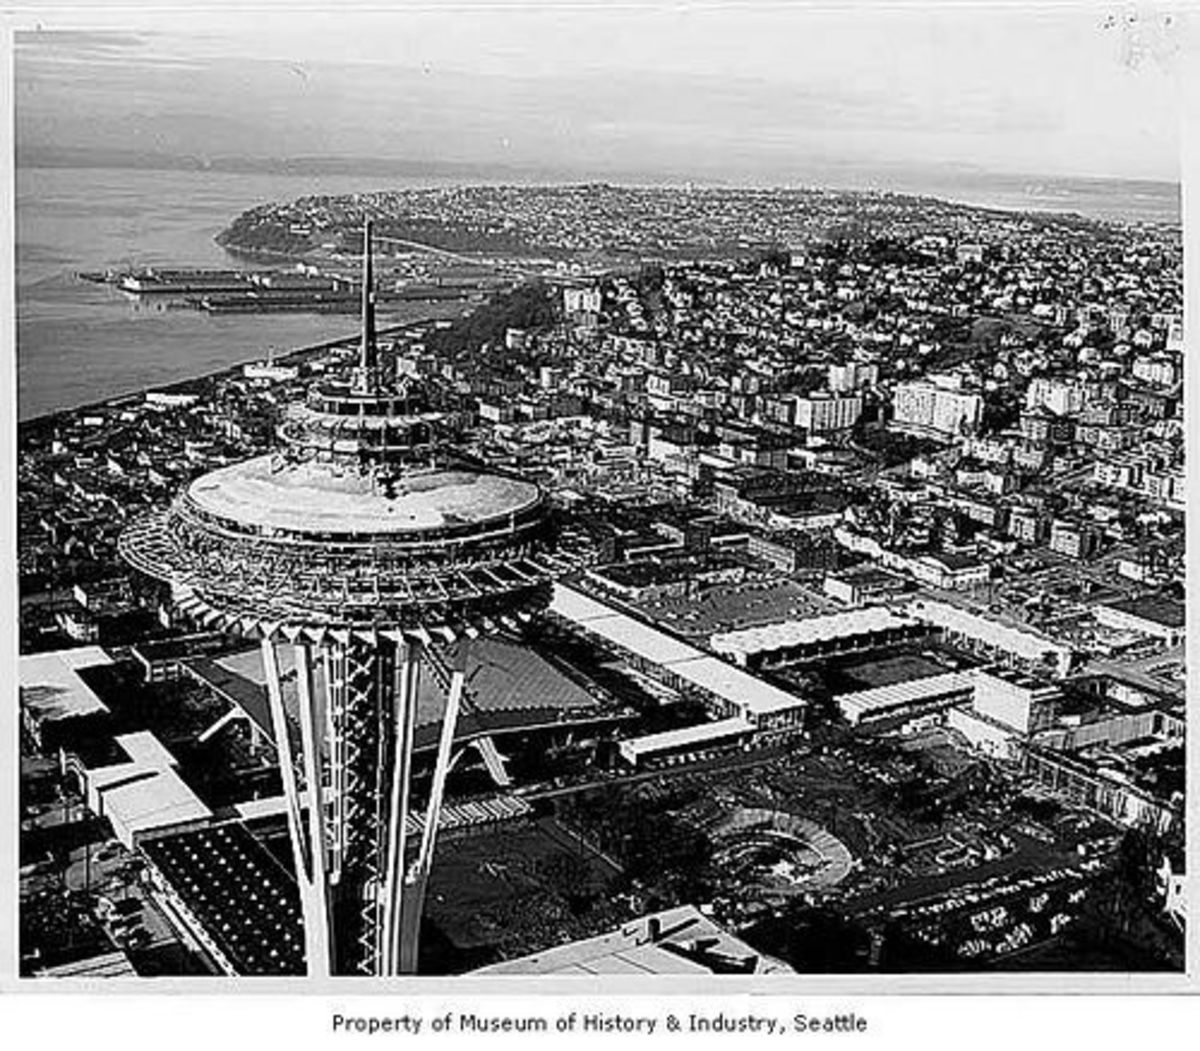 Construction of the Space Needle Revolving Restaurant